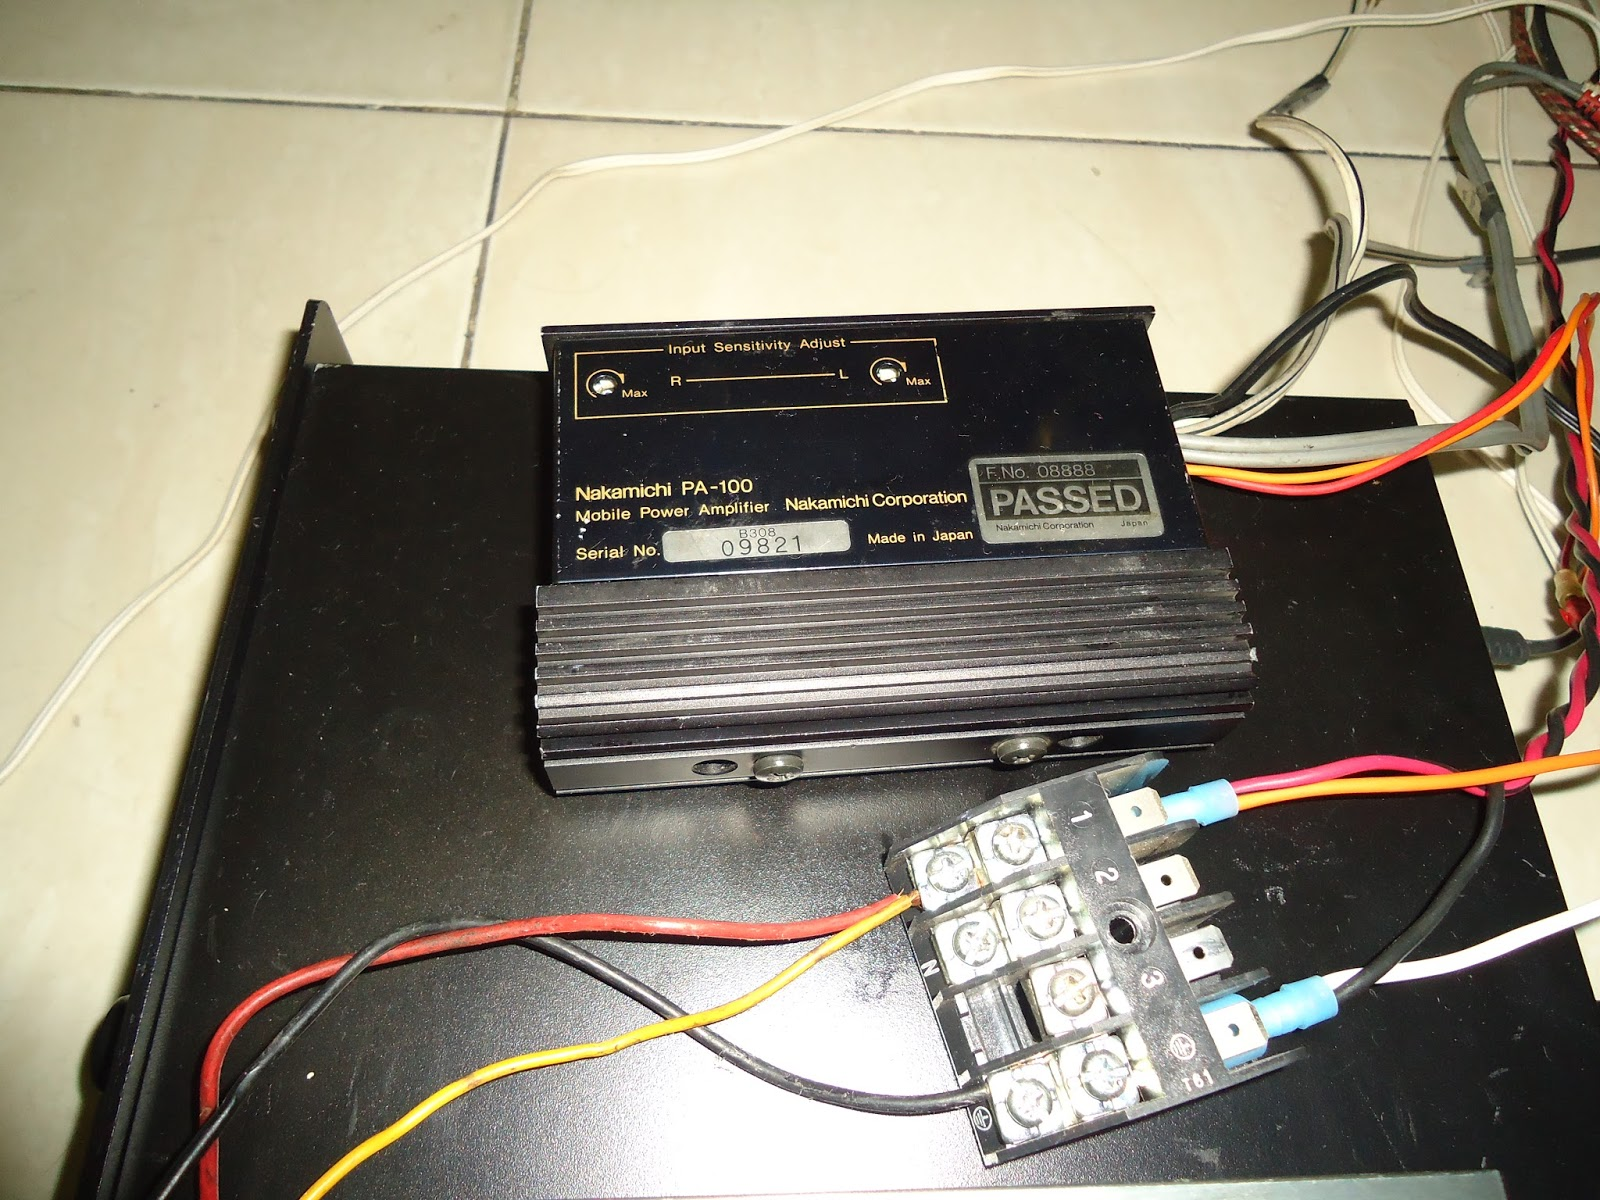 The Orronoco Audio Diy Simple Home Theater System Part 2 Final Wiring Supplies Channel Are Actually My Testing Speakers At Working Desk They From Local Brand Polytron Come A Mini